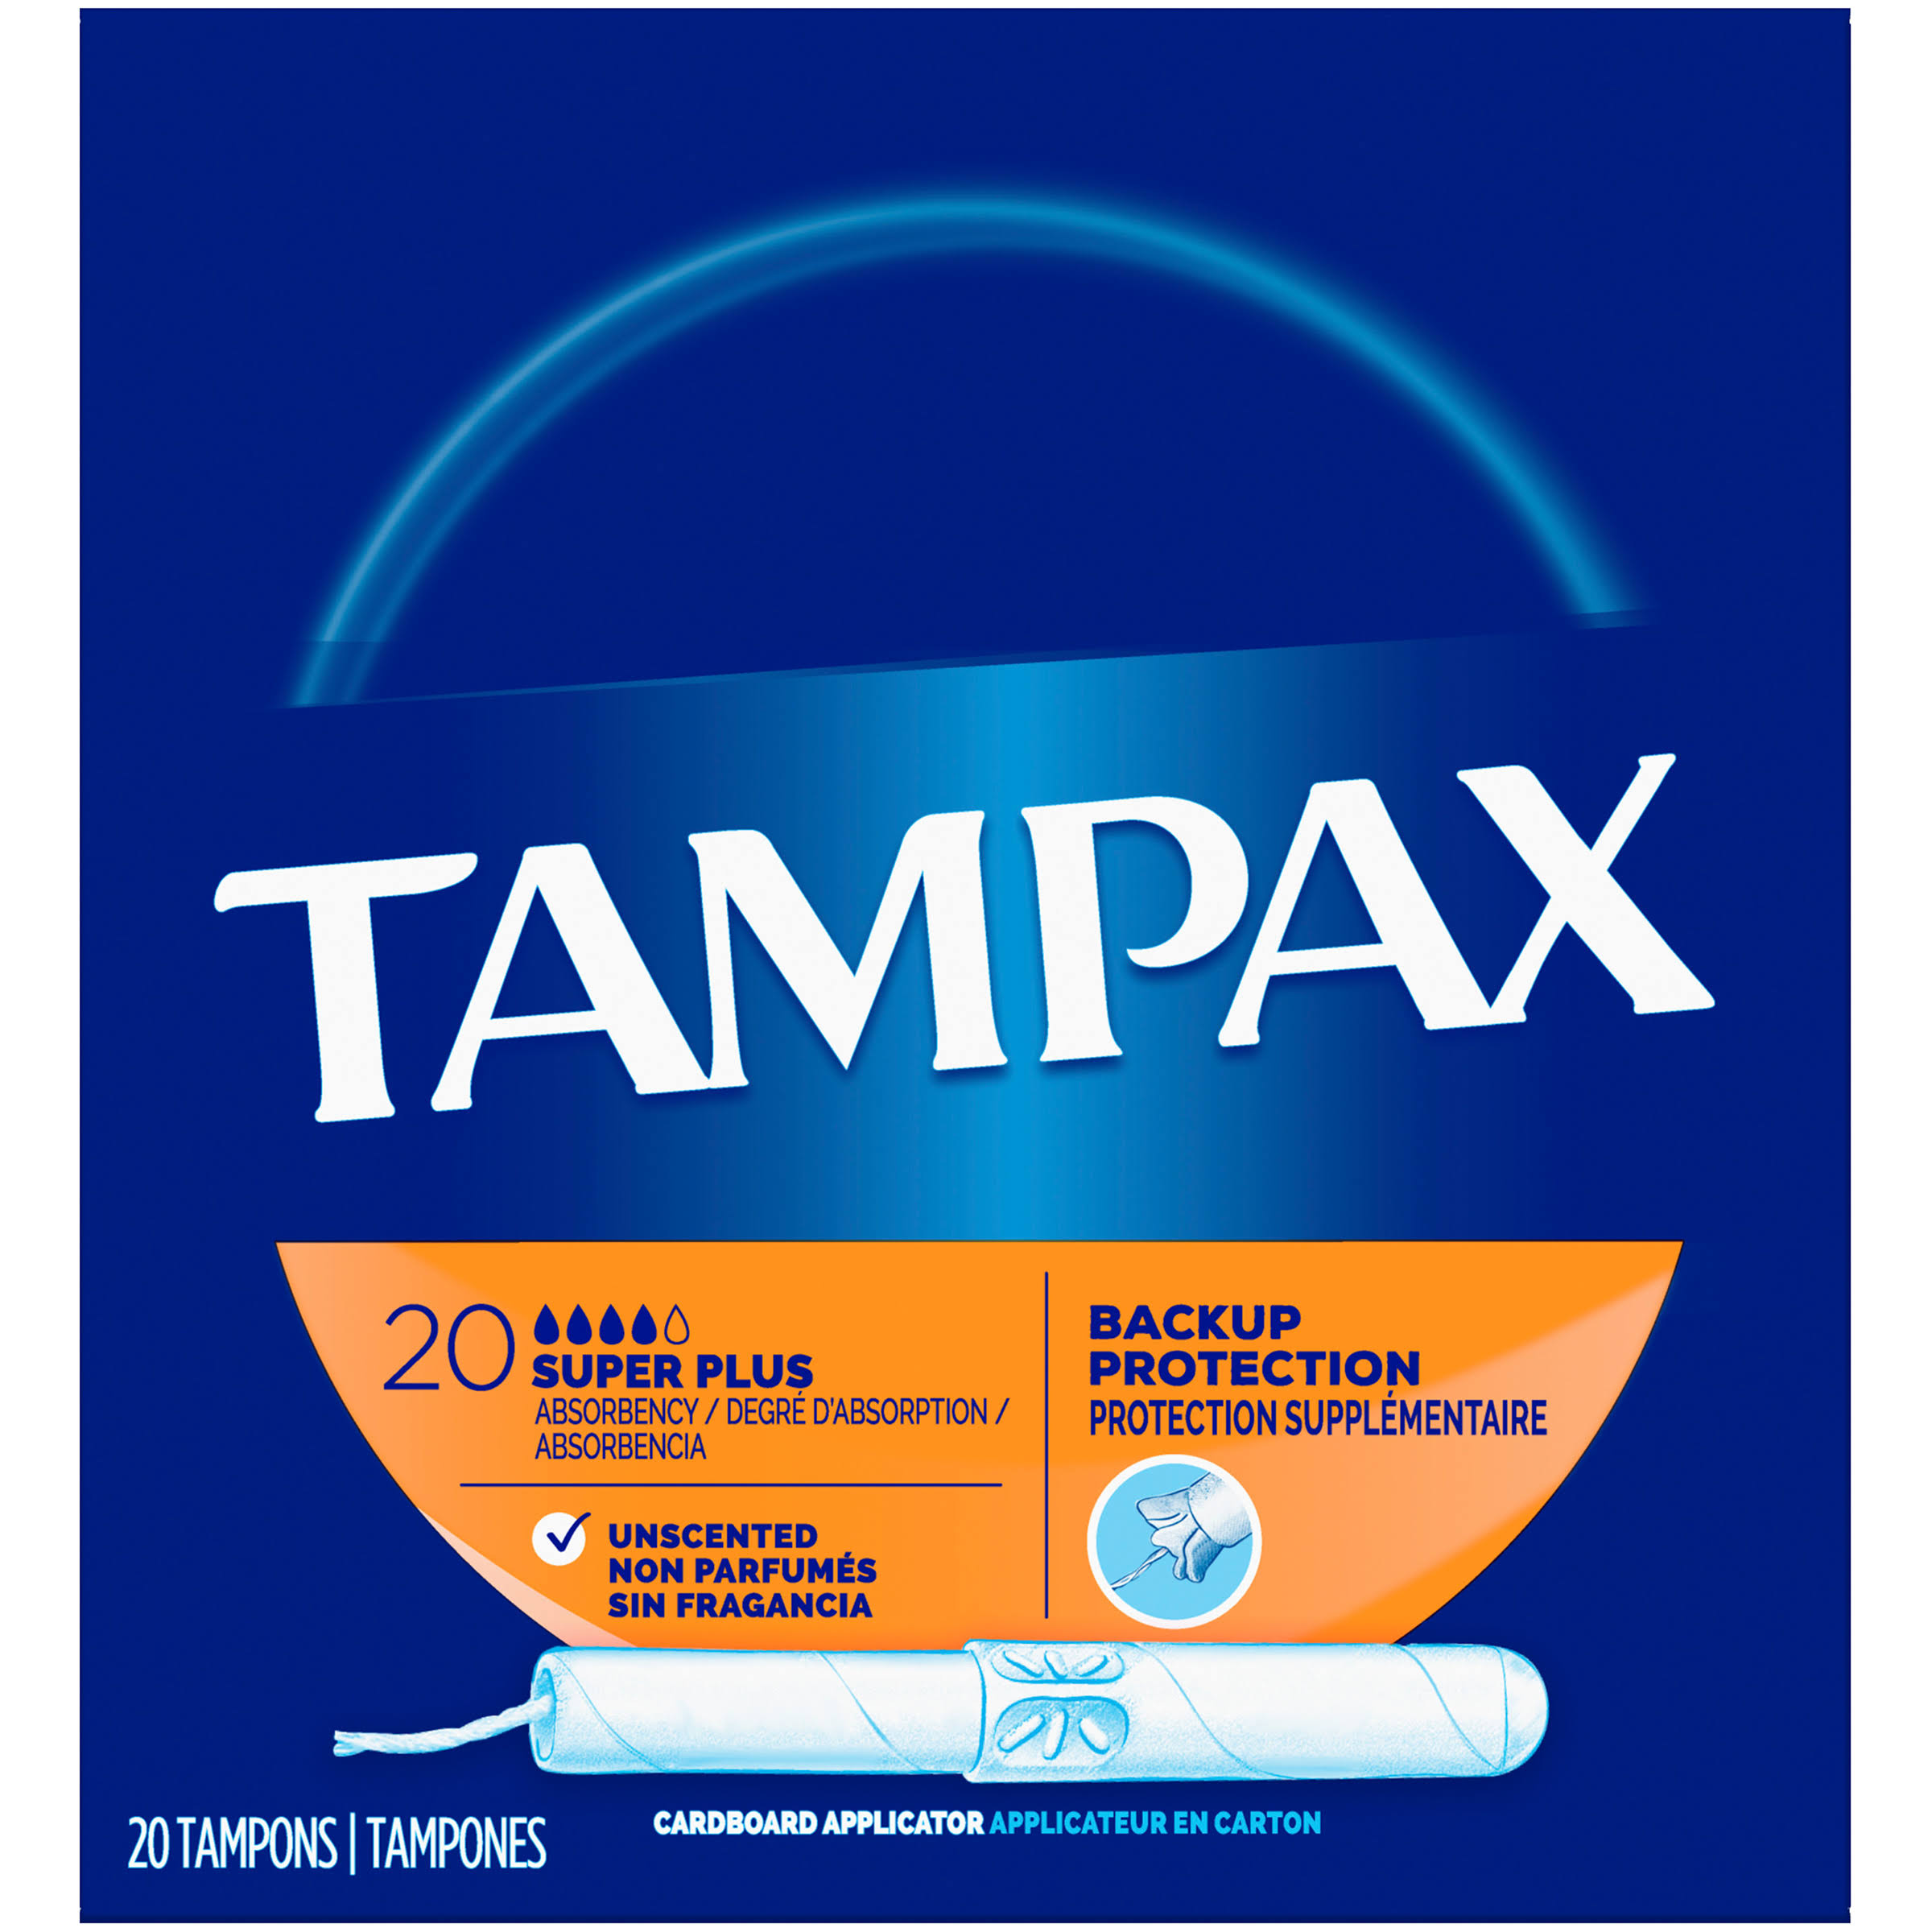 Tampax Anti-Slip Grip Cardboard Applicator Super Plus Absorbency Tampons - 20 Pack